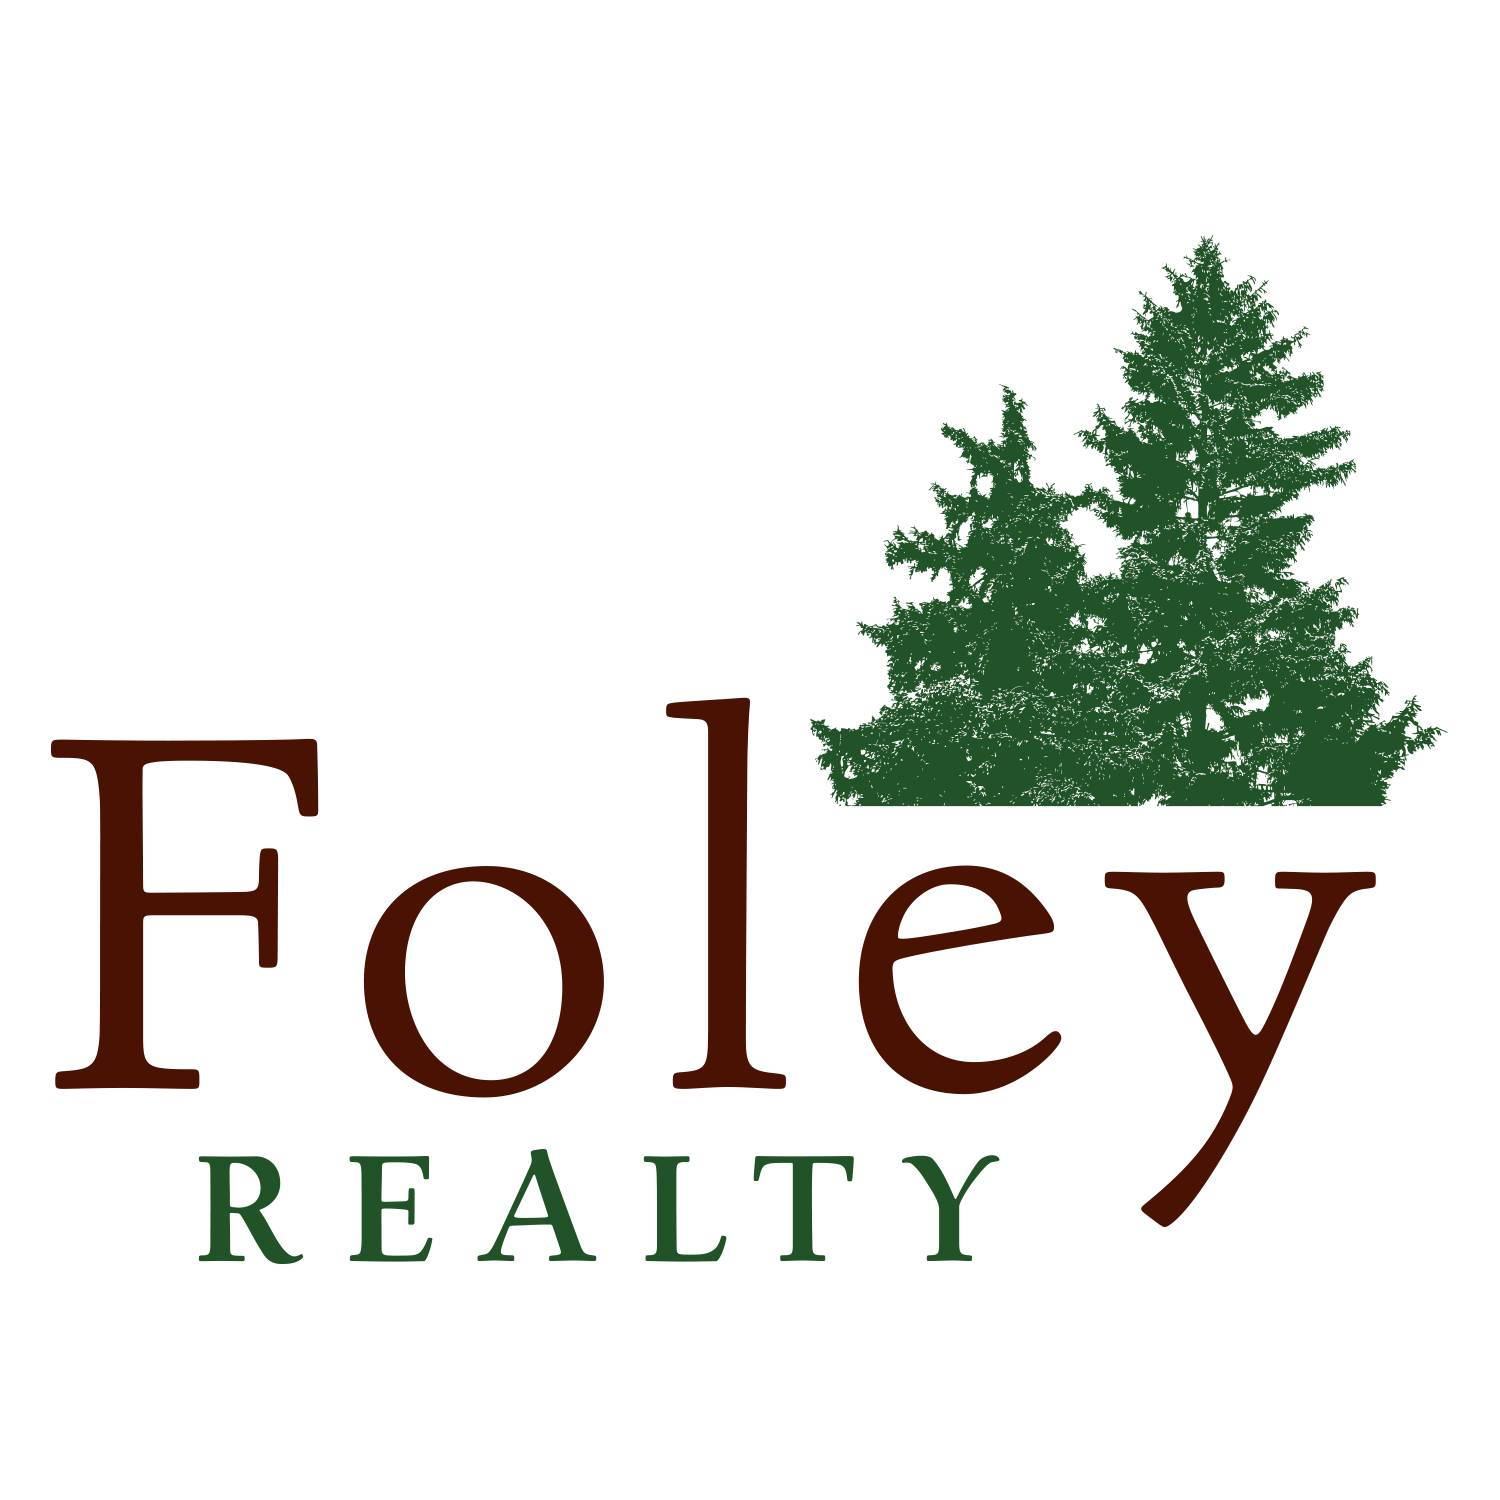 Foley Realty Inc